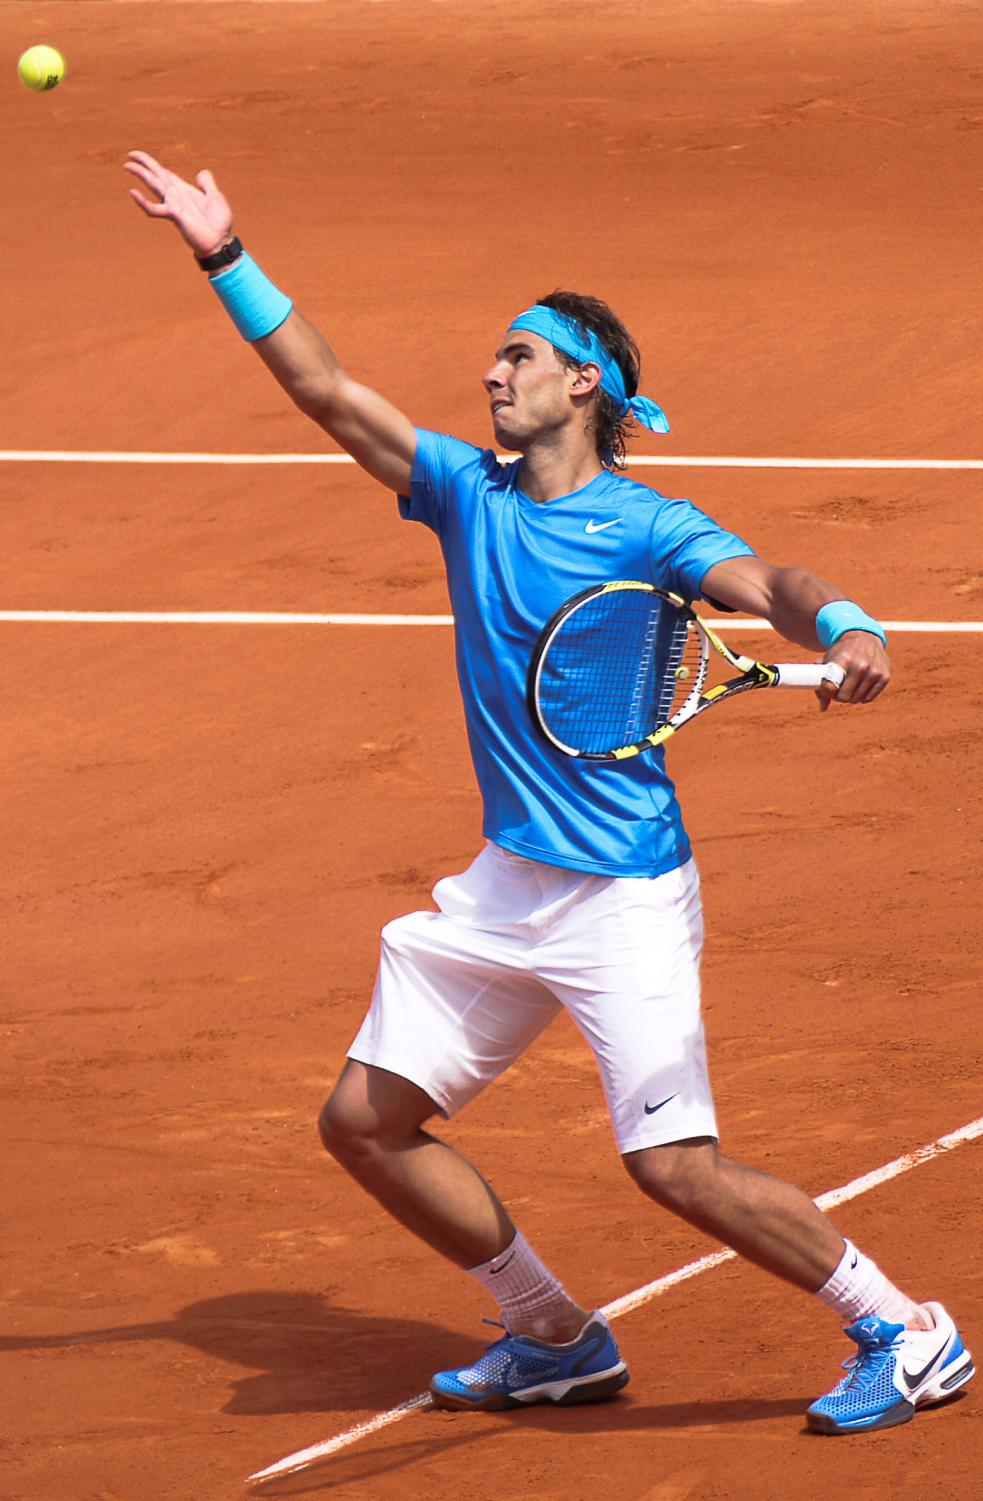 Nadal, who had won his fourth US Open title, had won 7-5, 6-3, 5-7, 4-6, 6-4. https://creativecommons.org/licenses/by/2.0/